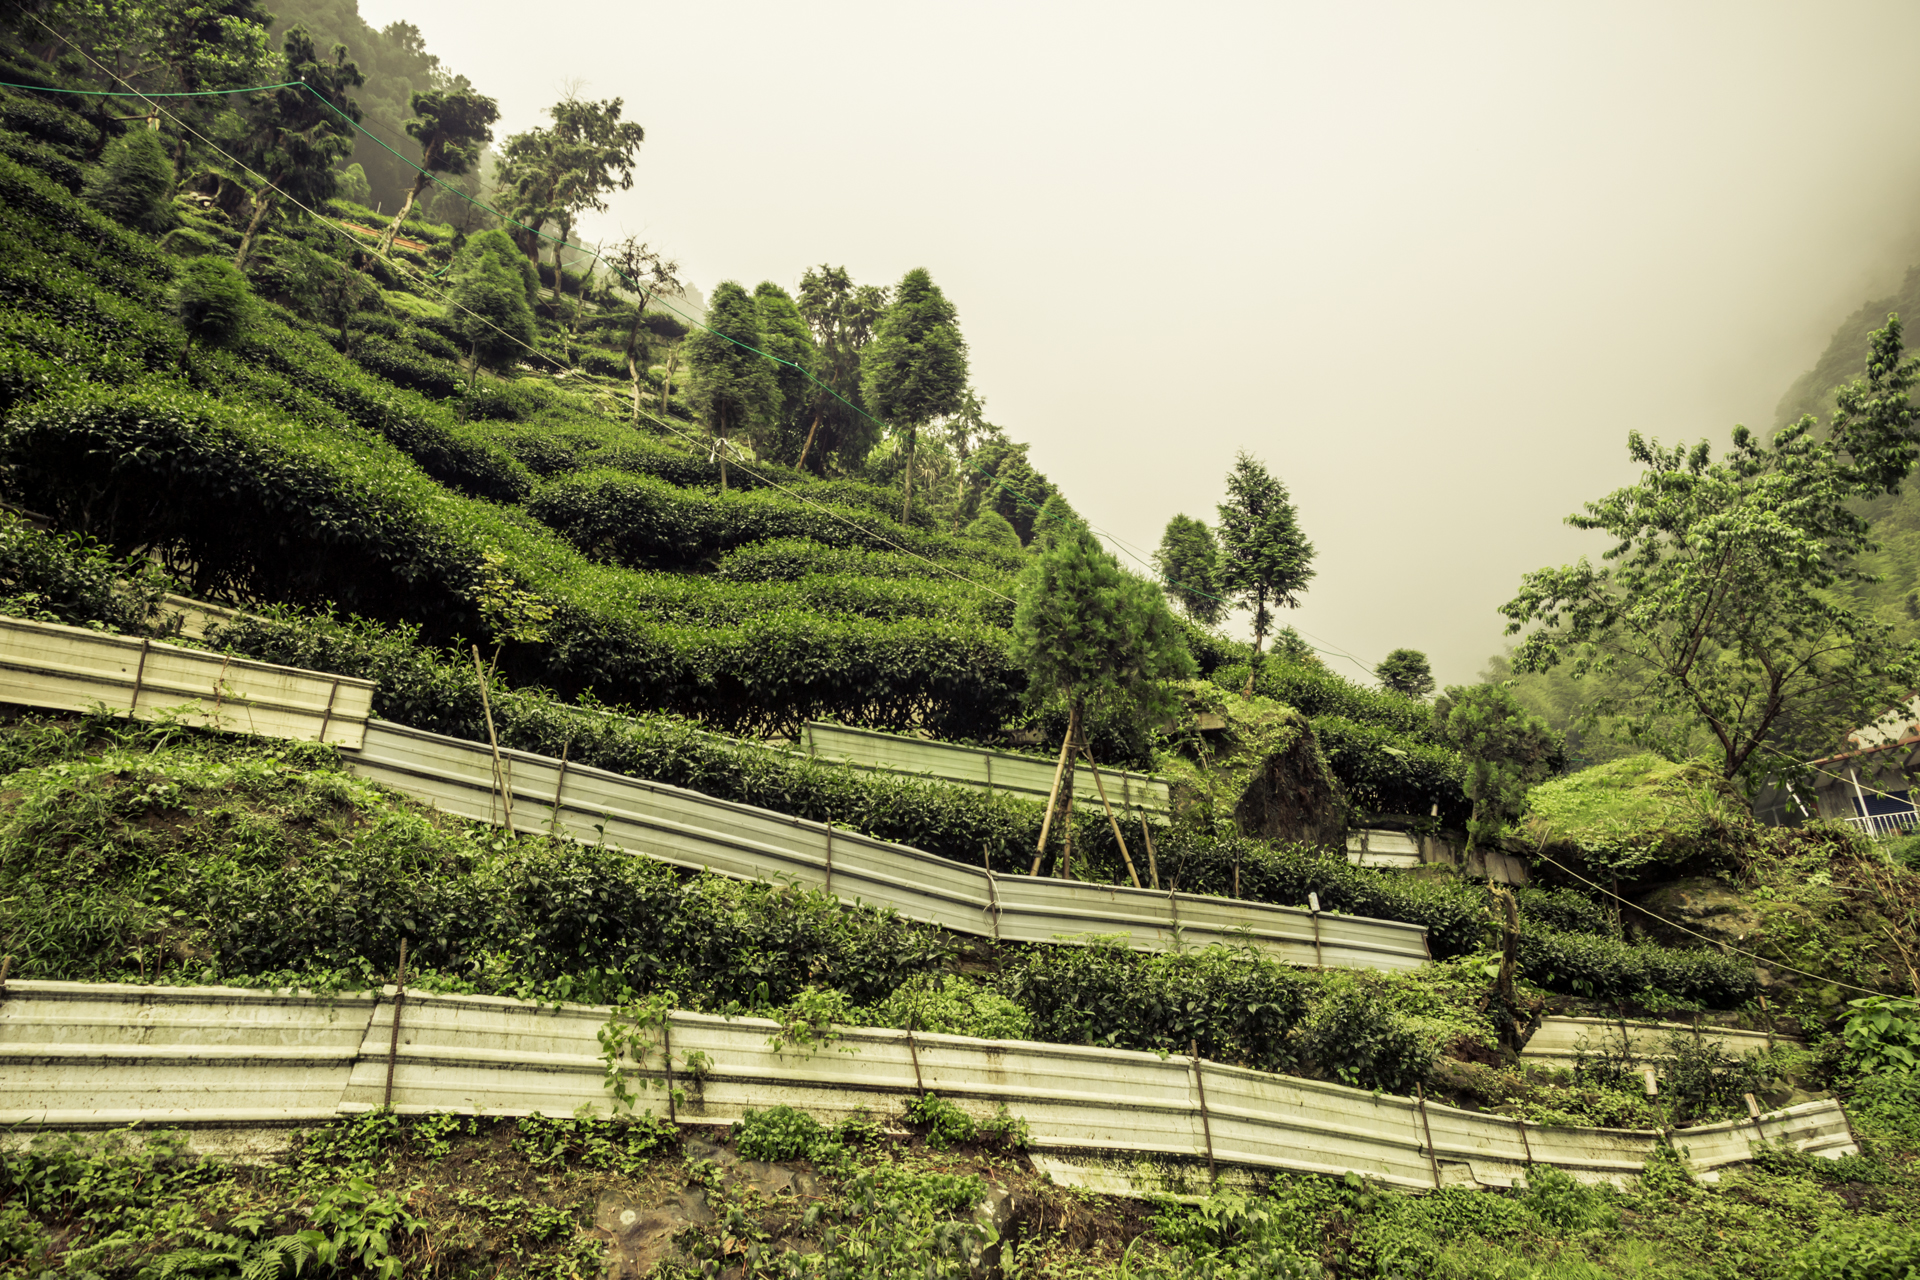 Growing tea in the mountains of Nantou county